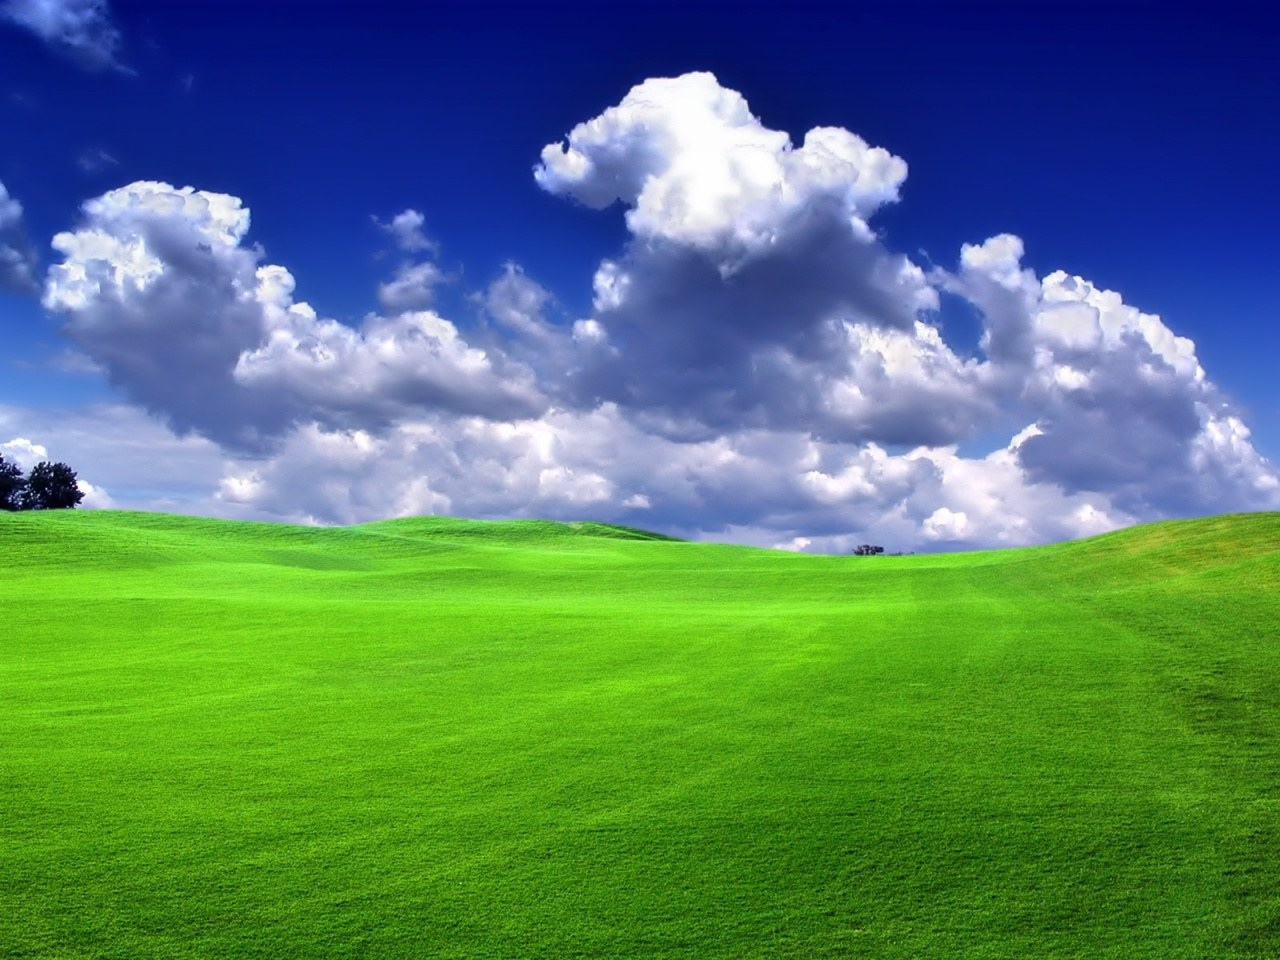 green-grass-blue-sky.jpeg - Green-grass-blue-sky.jpeg - GML Total Lawn Care